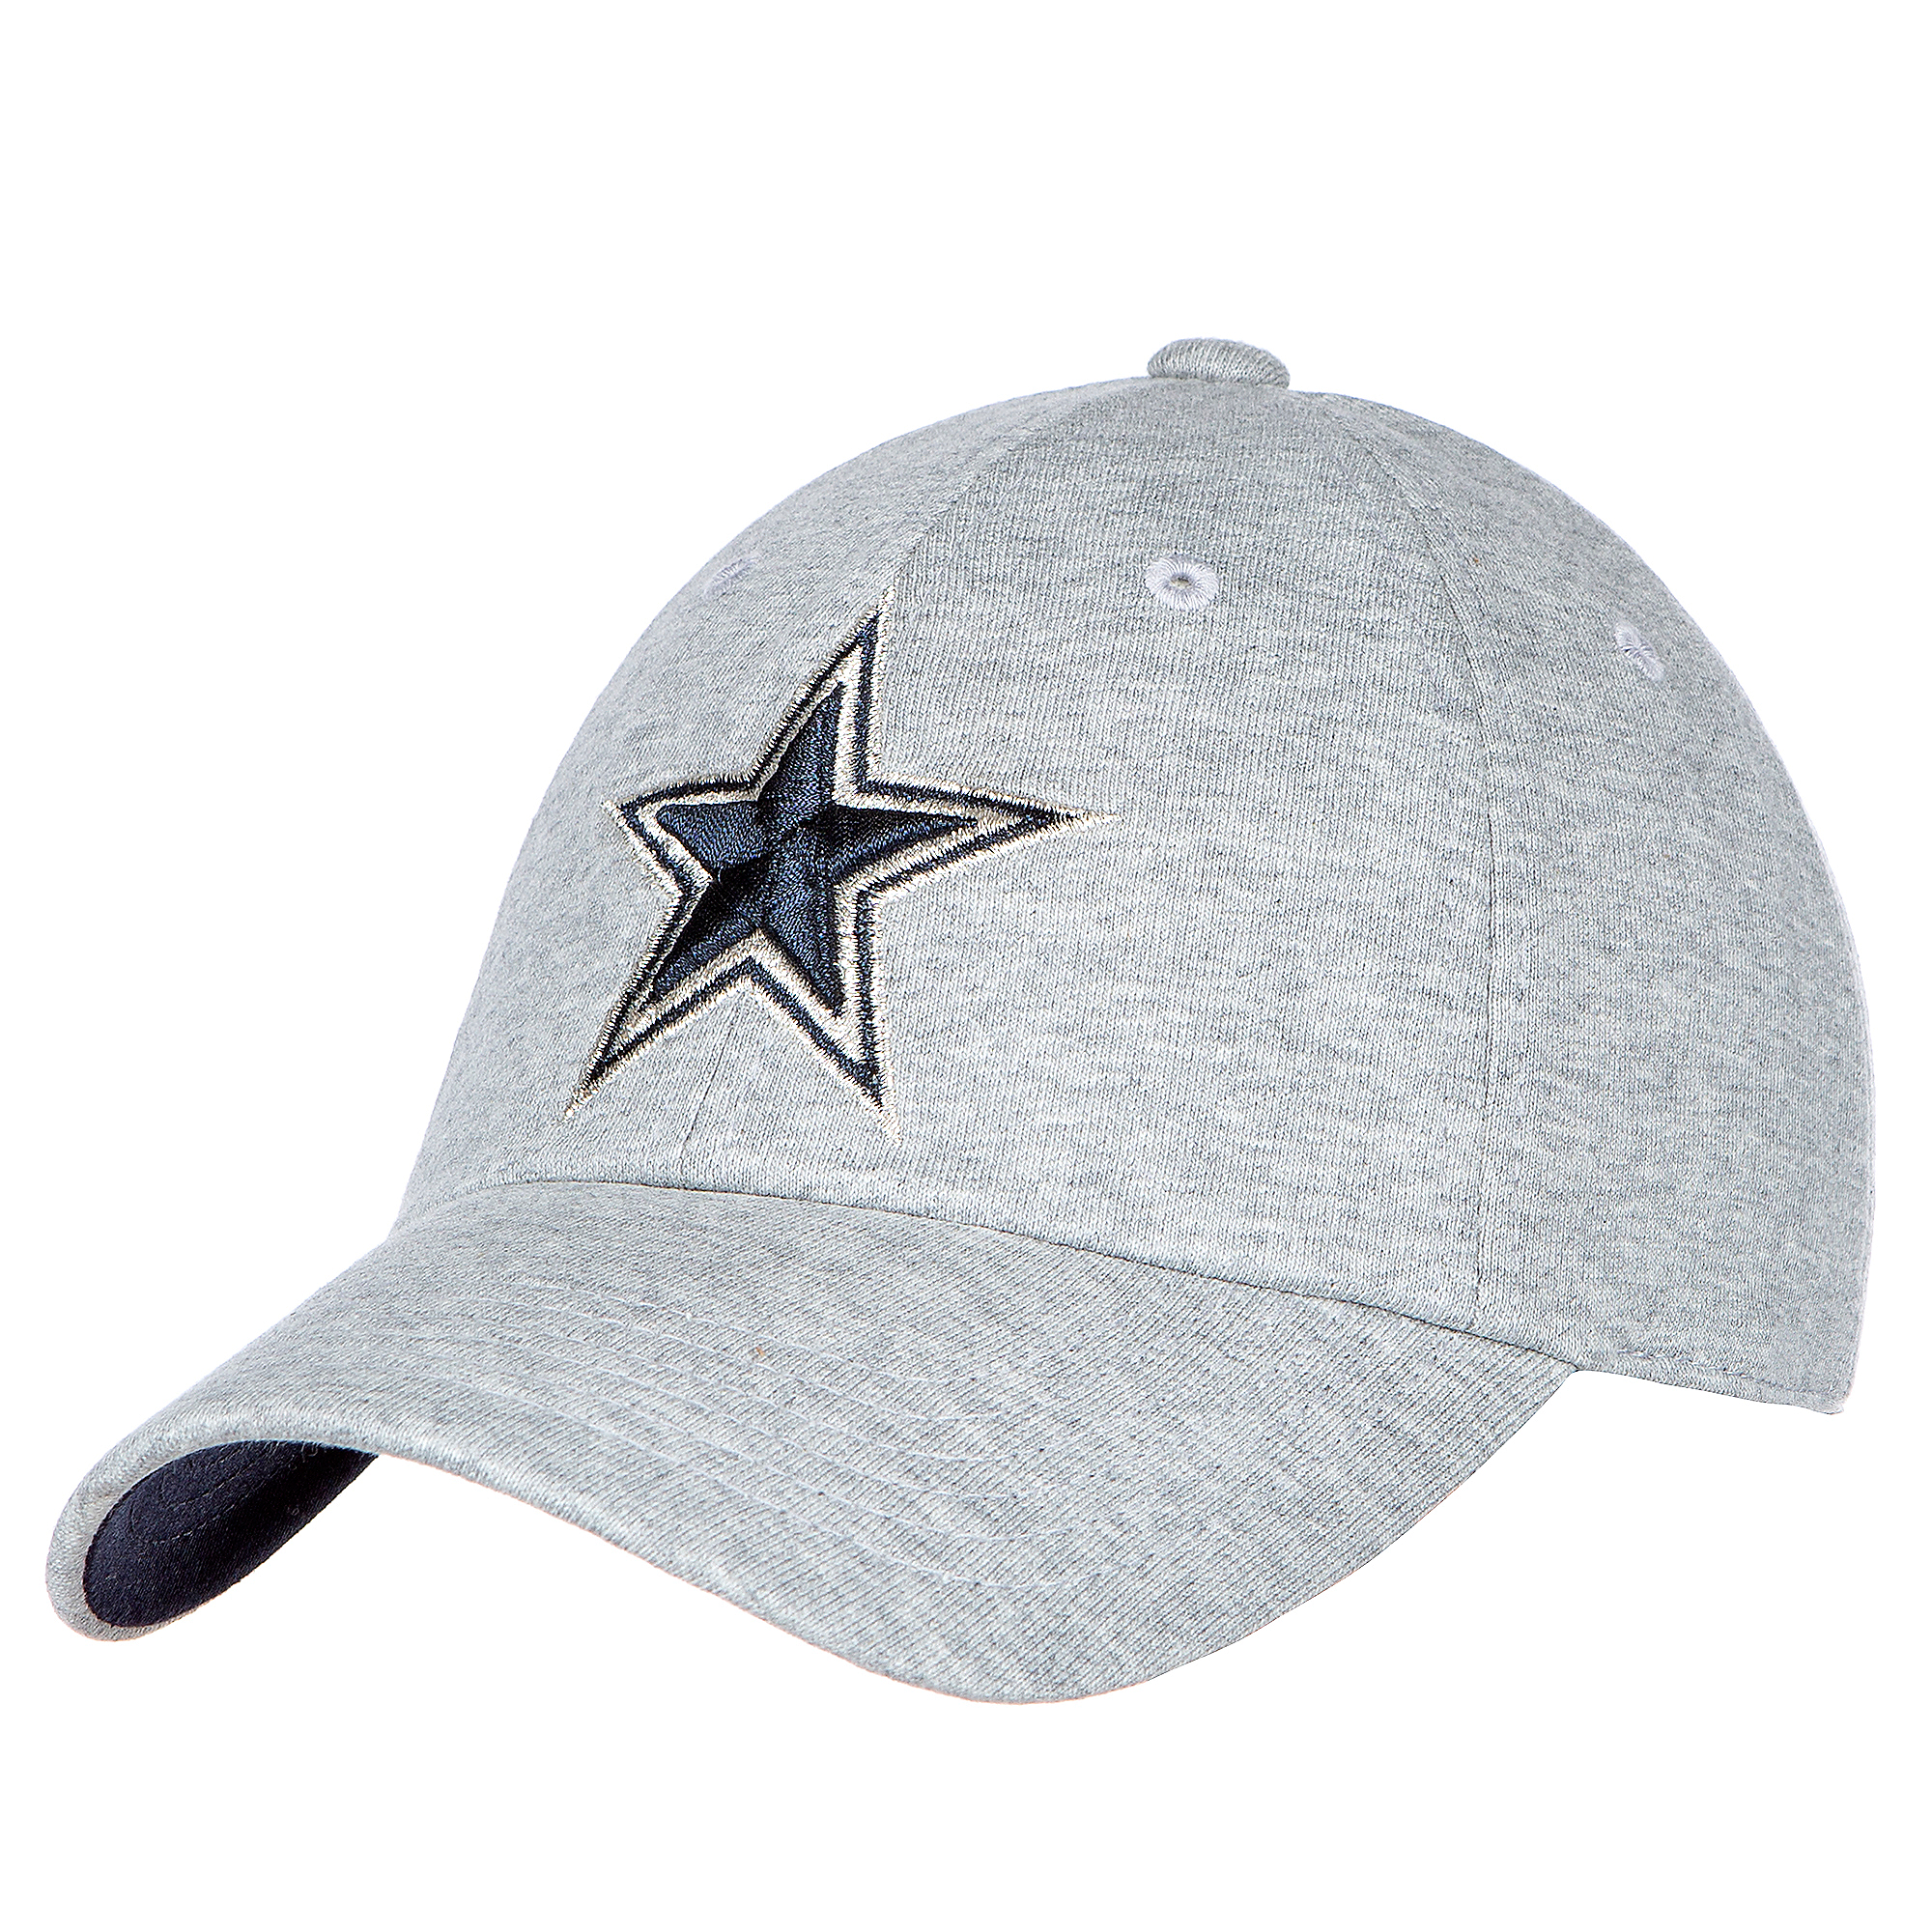 Dallas Cowboys Womens Theresa Adjustable Cap